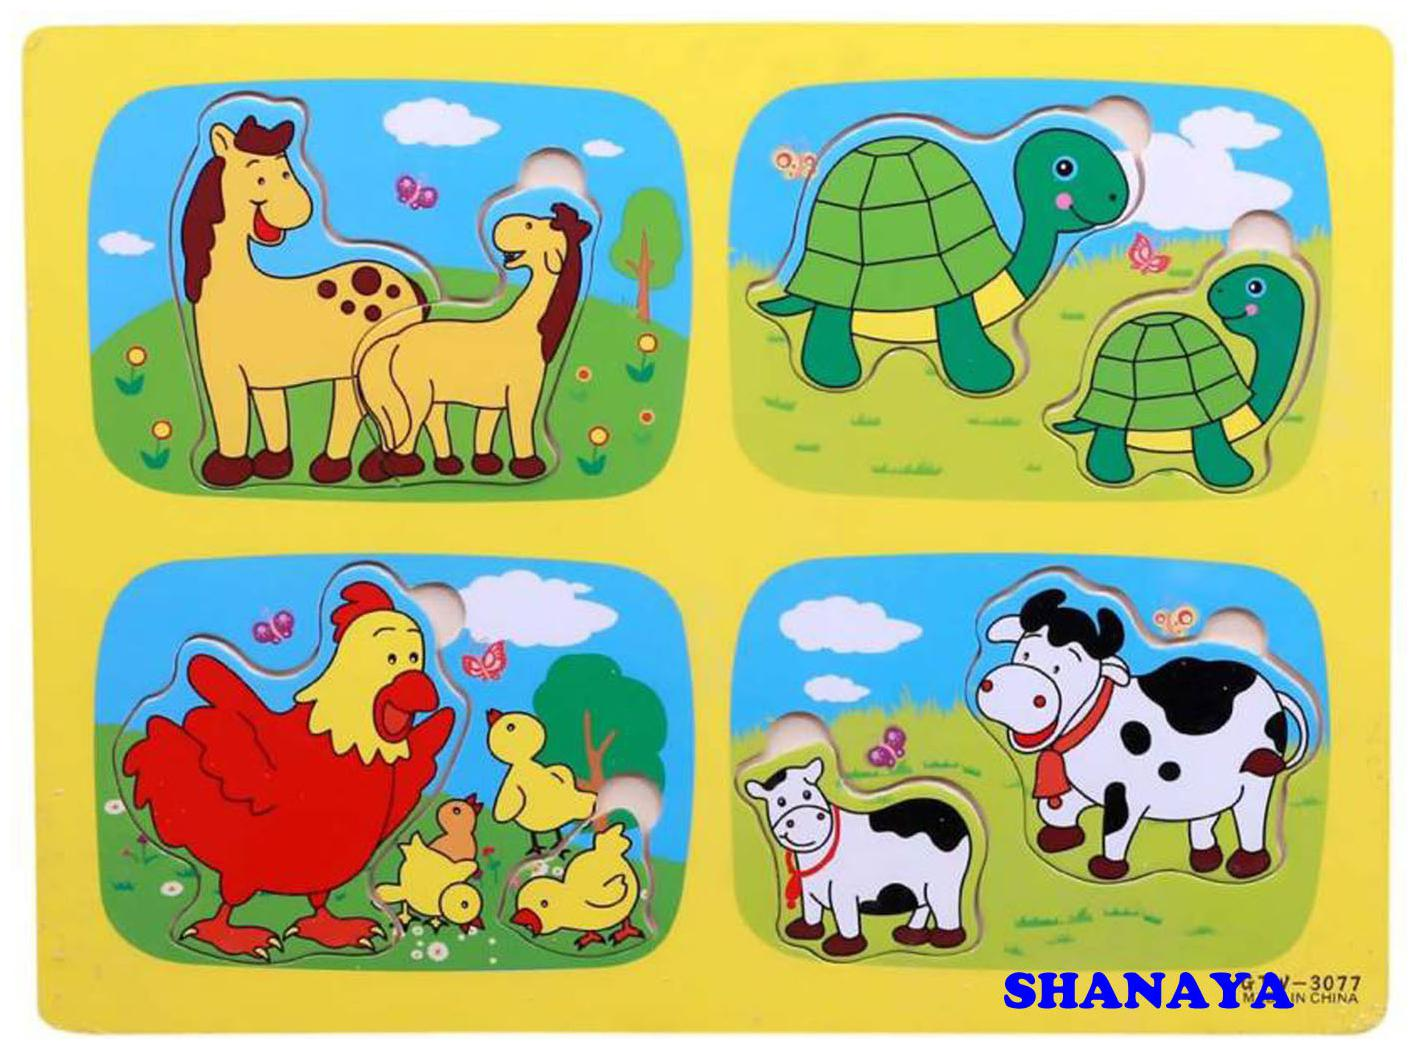 SHANAYA Colorful Wooden Jigsaw Puzzle Educational Learning Toy for Kids  Children  Boys  Girls  Wild Animals  by Toys For Kids